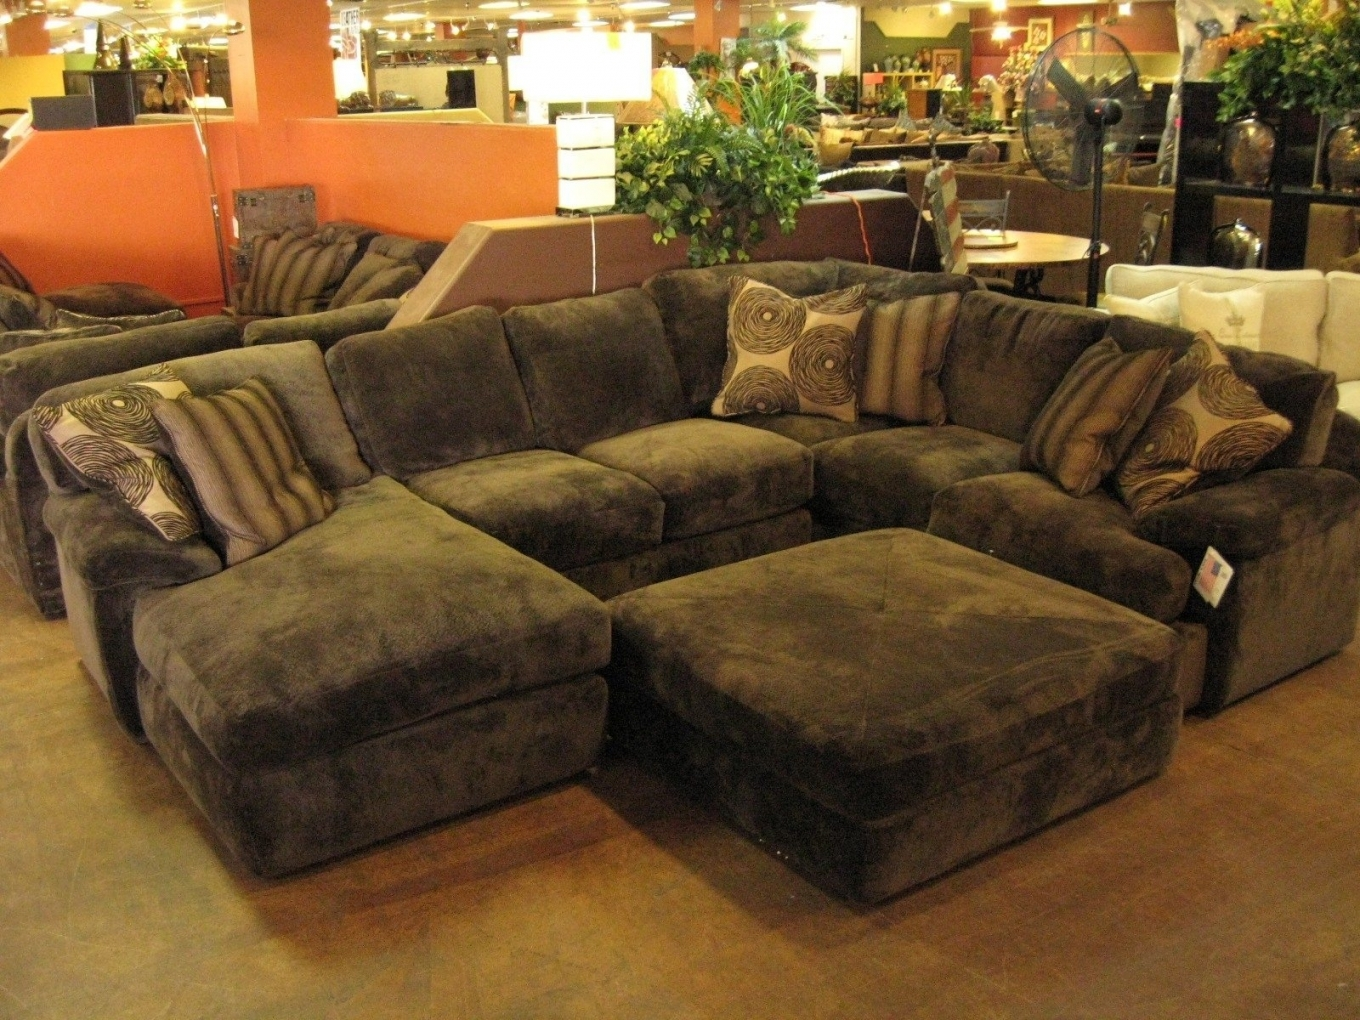 Coolest Comfortable Sectional Sofas Iel14 #664 with regard to Comfortable Sectional Sofas (Image 3 of 10)